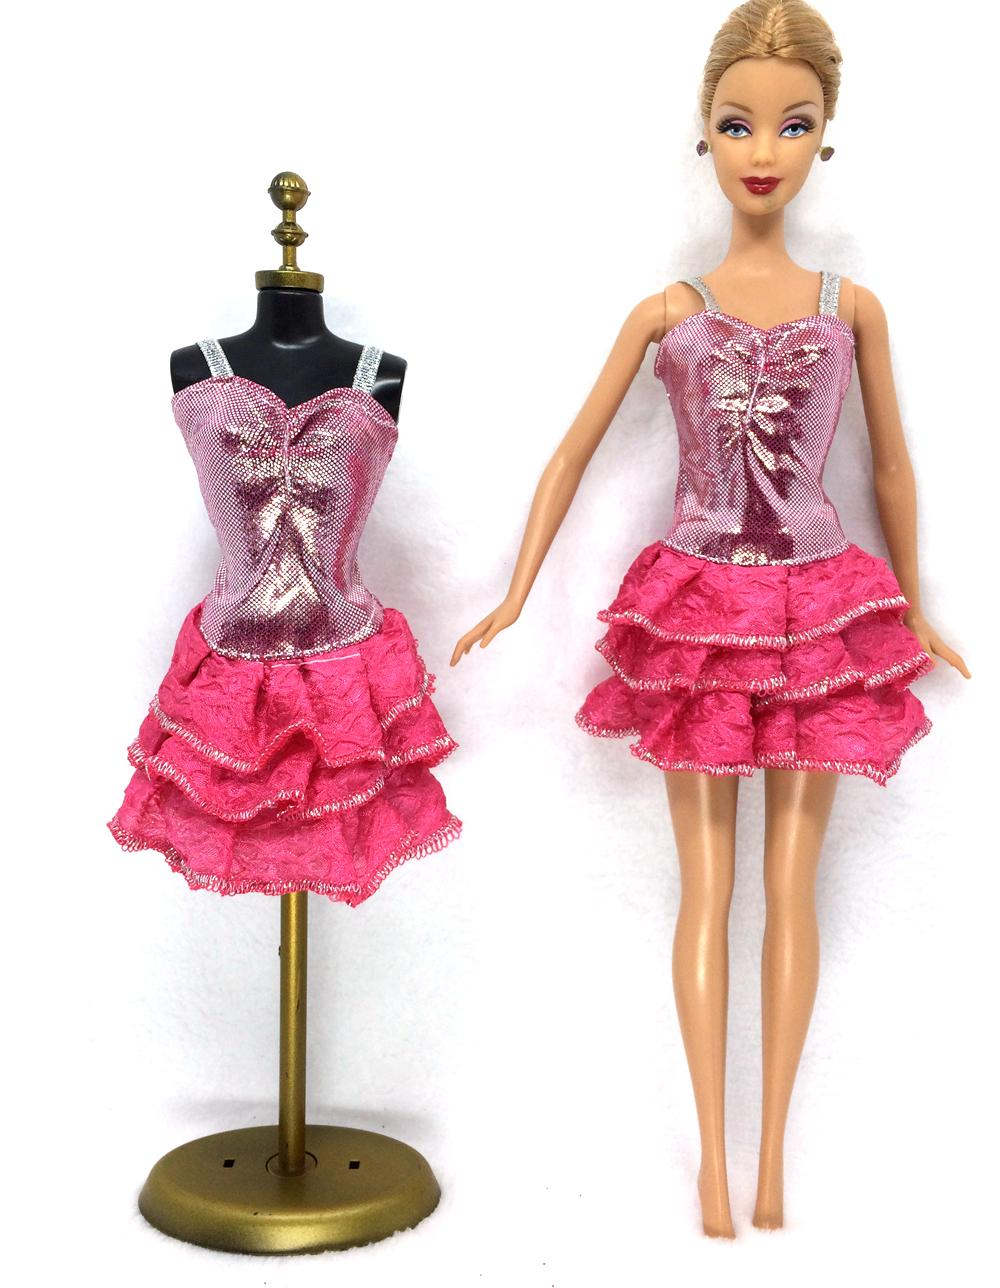 NK 2016 Latest Doll Costume Stunning Handmade Social gathering ClothesTop Style Costume For Barbie Noble Doll Greatest Little one Women'Reward 006A